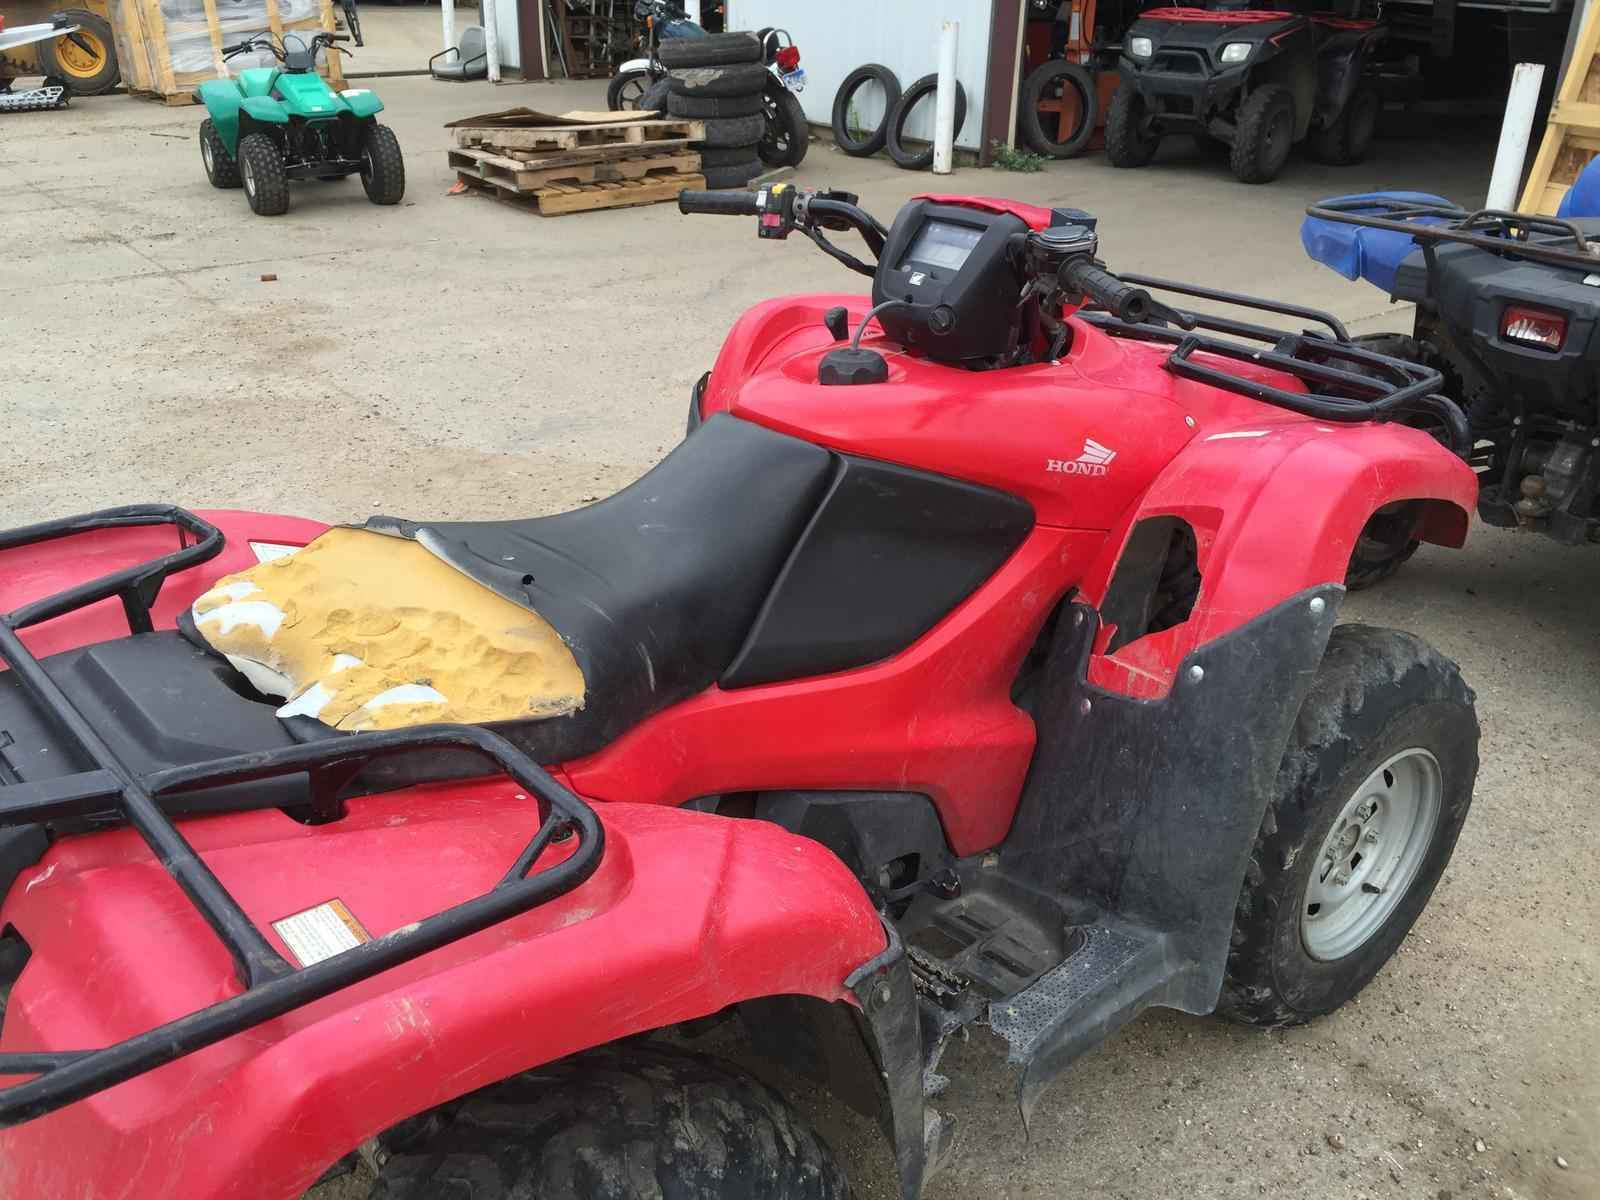 Used Honda Four Wheelers For Sale >> Used 2012 Honda Foreman 4x4 Atvs For Sale In South Dakota On Atvtrades Com